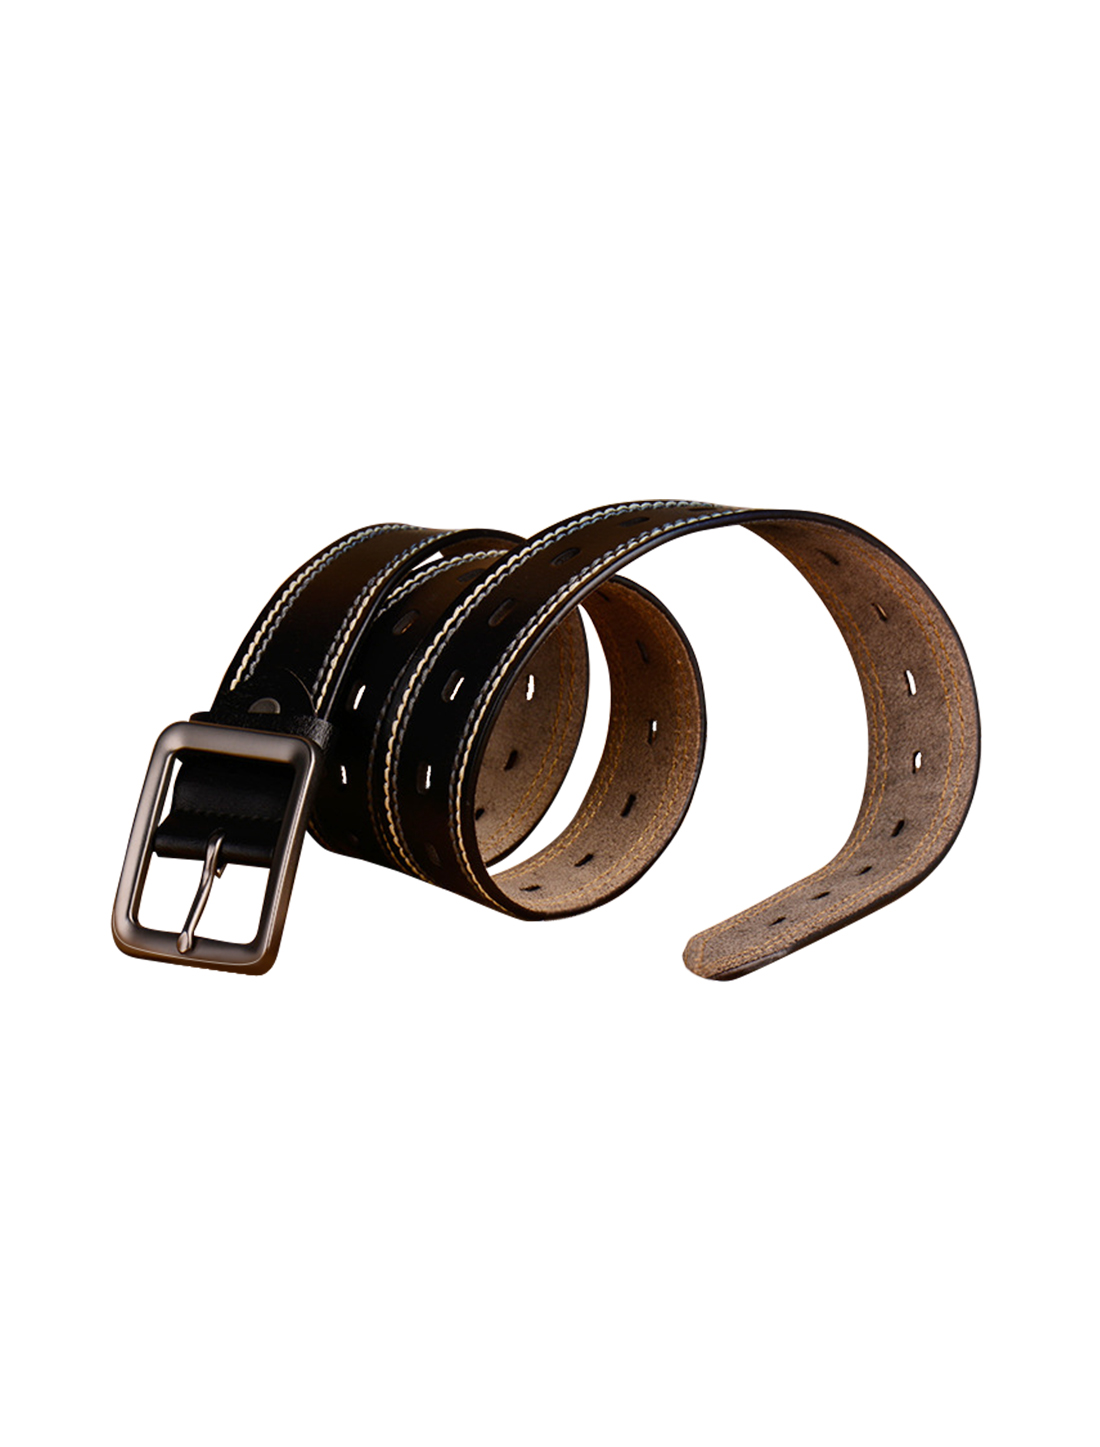 Mens Casual Stitching Single Pin Buckle Leather Belt 39mm Width 1 1/2 Black 110cm